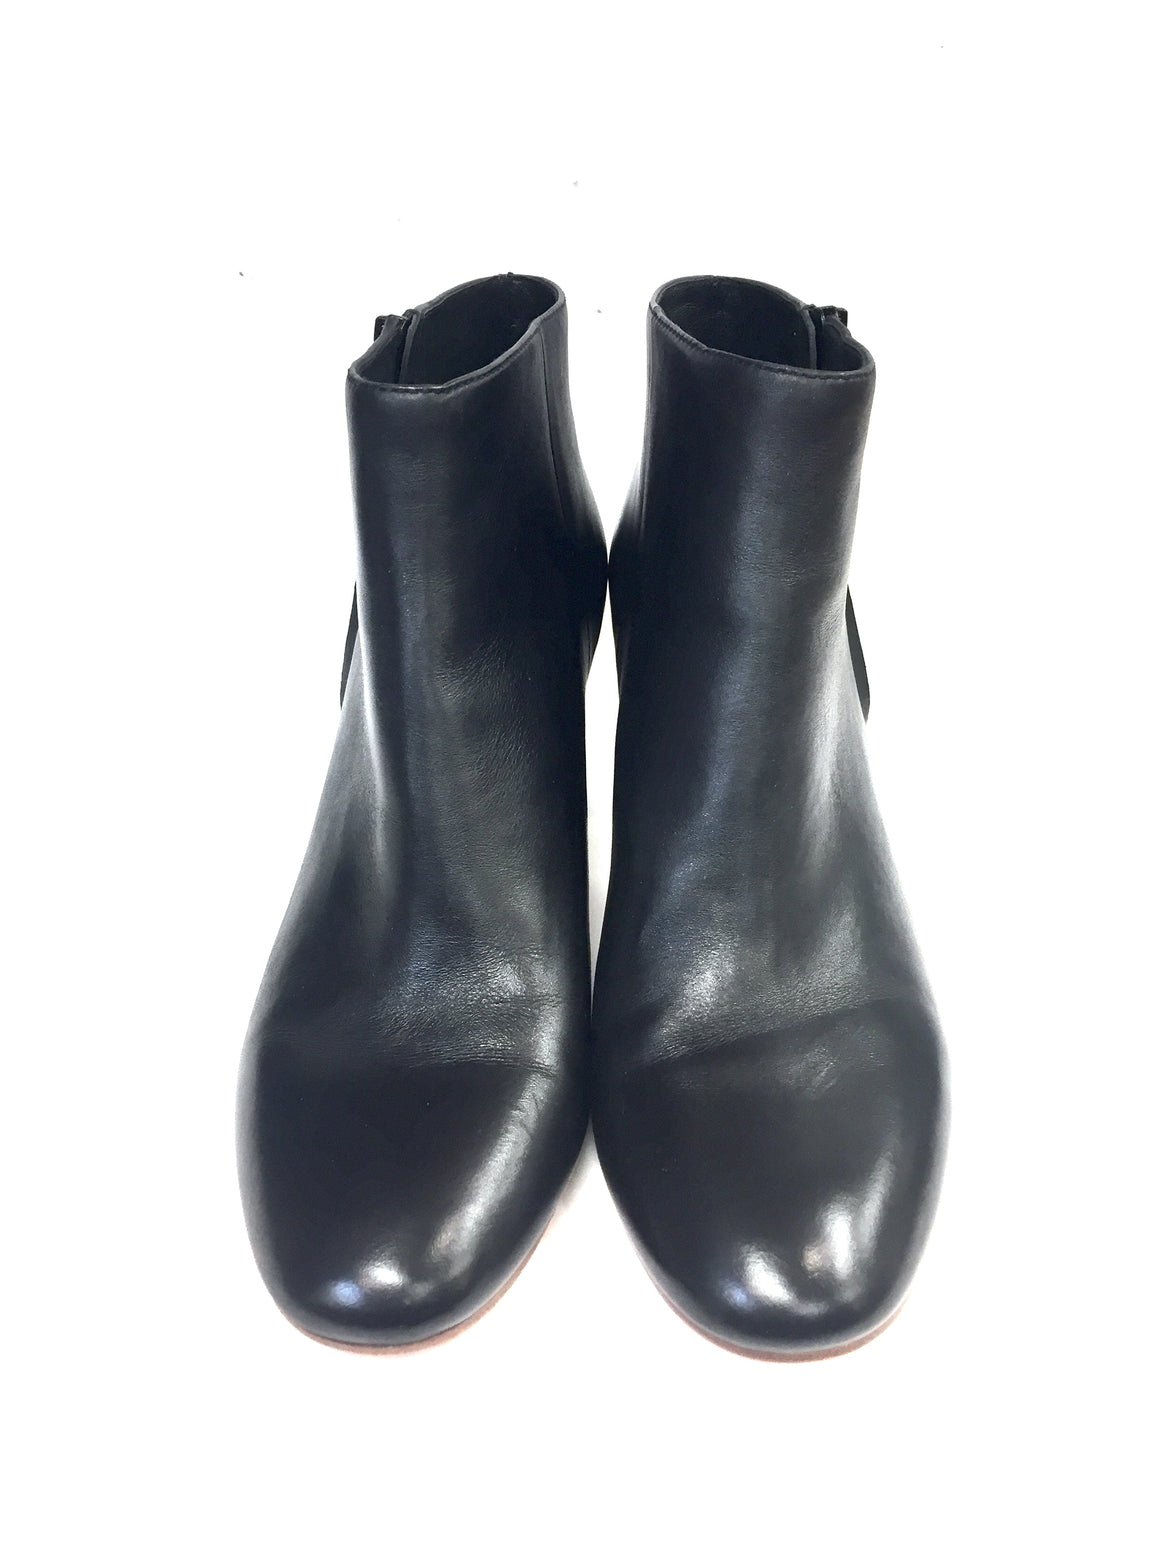 LOEFFLER RANDALL Black Leather Block Heel Ankle Boots Booties Size: 10 B